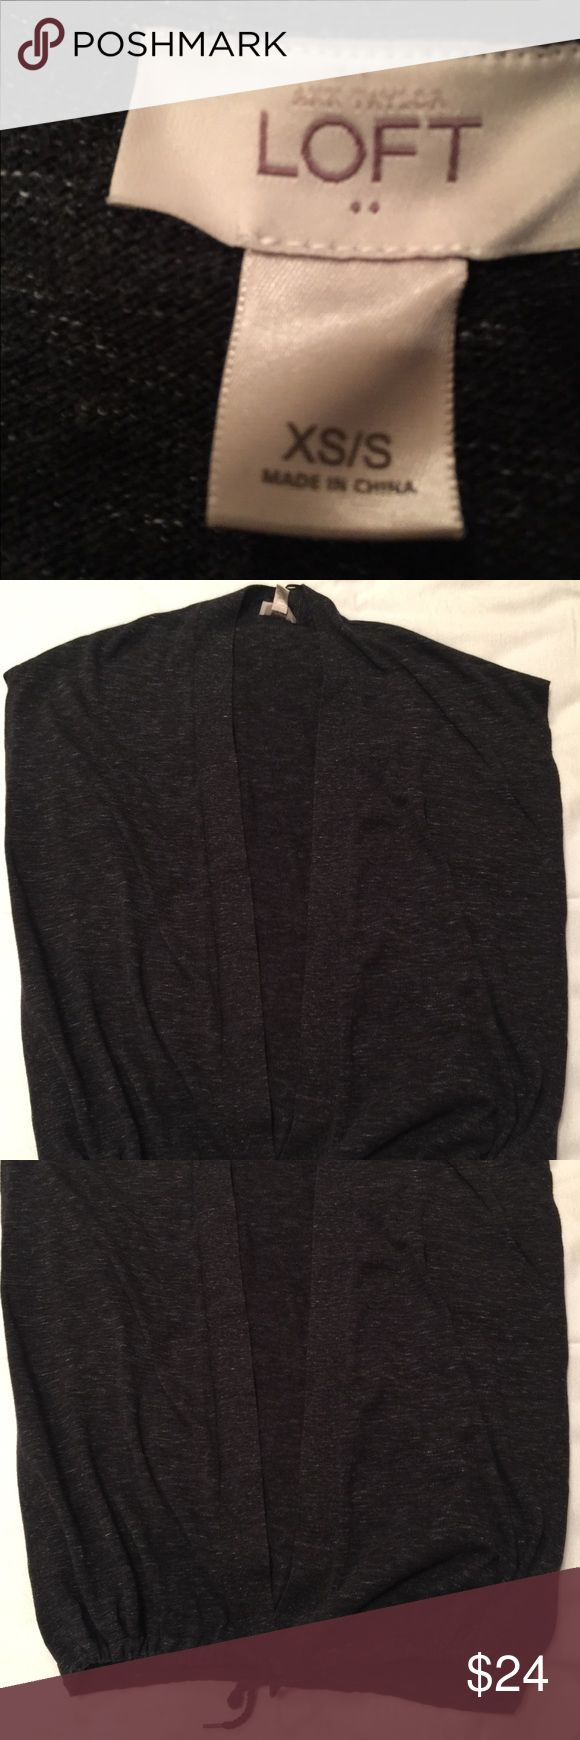 Ann Taylor Loft Sleeveless top Anne Taylor Loft Sleeveless Wrap Top with drawstring tie at bottom.  Fabric is lightweight super soft sweater material in a heathered Black.  EUC. LOFT Sweaters Shrugs & Ponchos